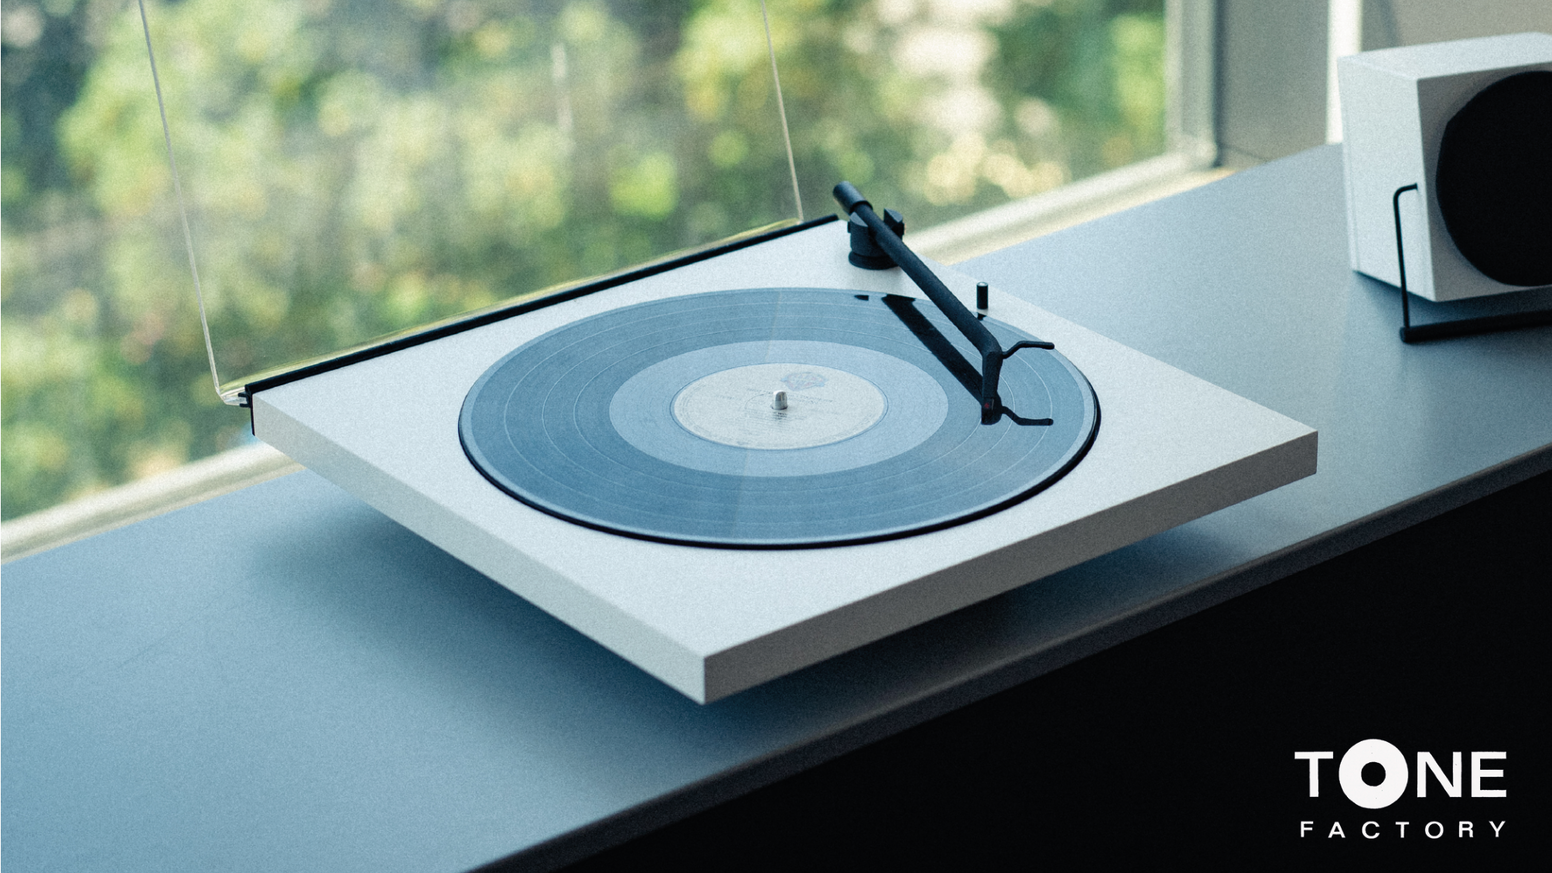 TONE Factory - a minimalist turntable optimized for your bluetooth speaker